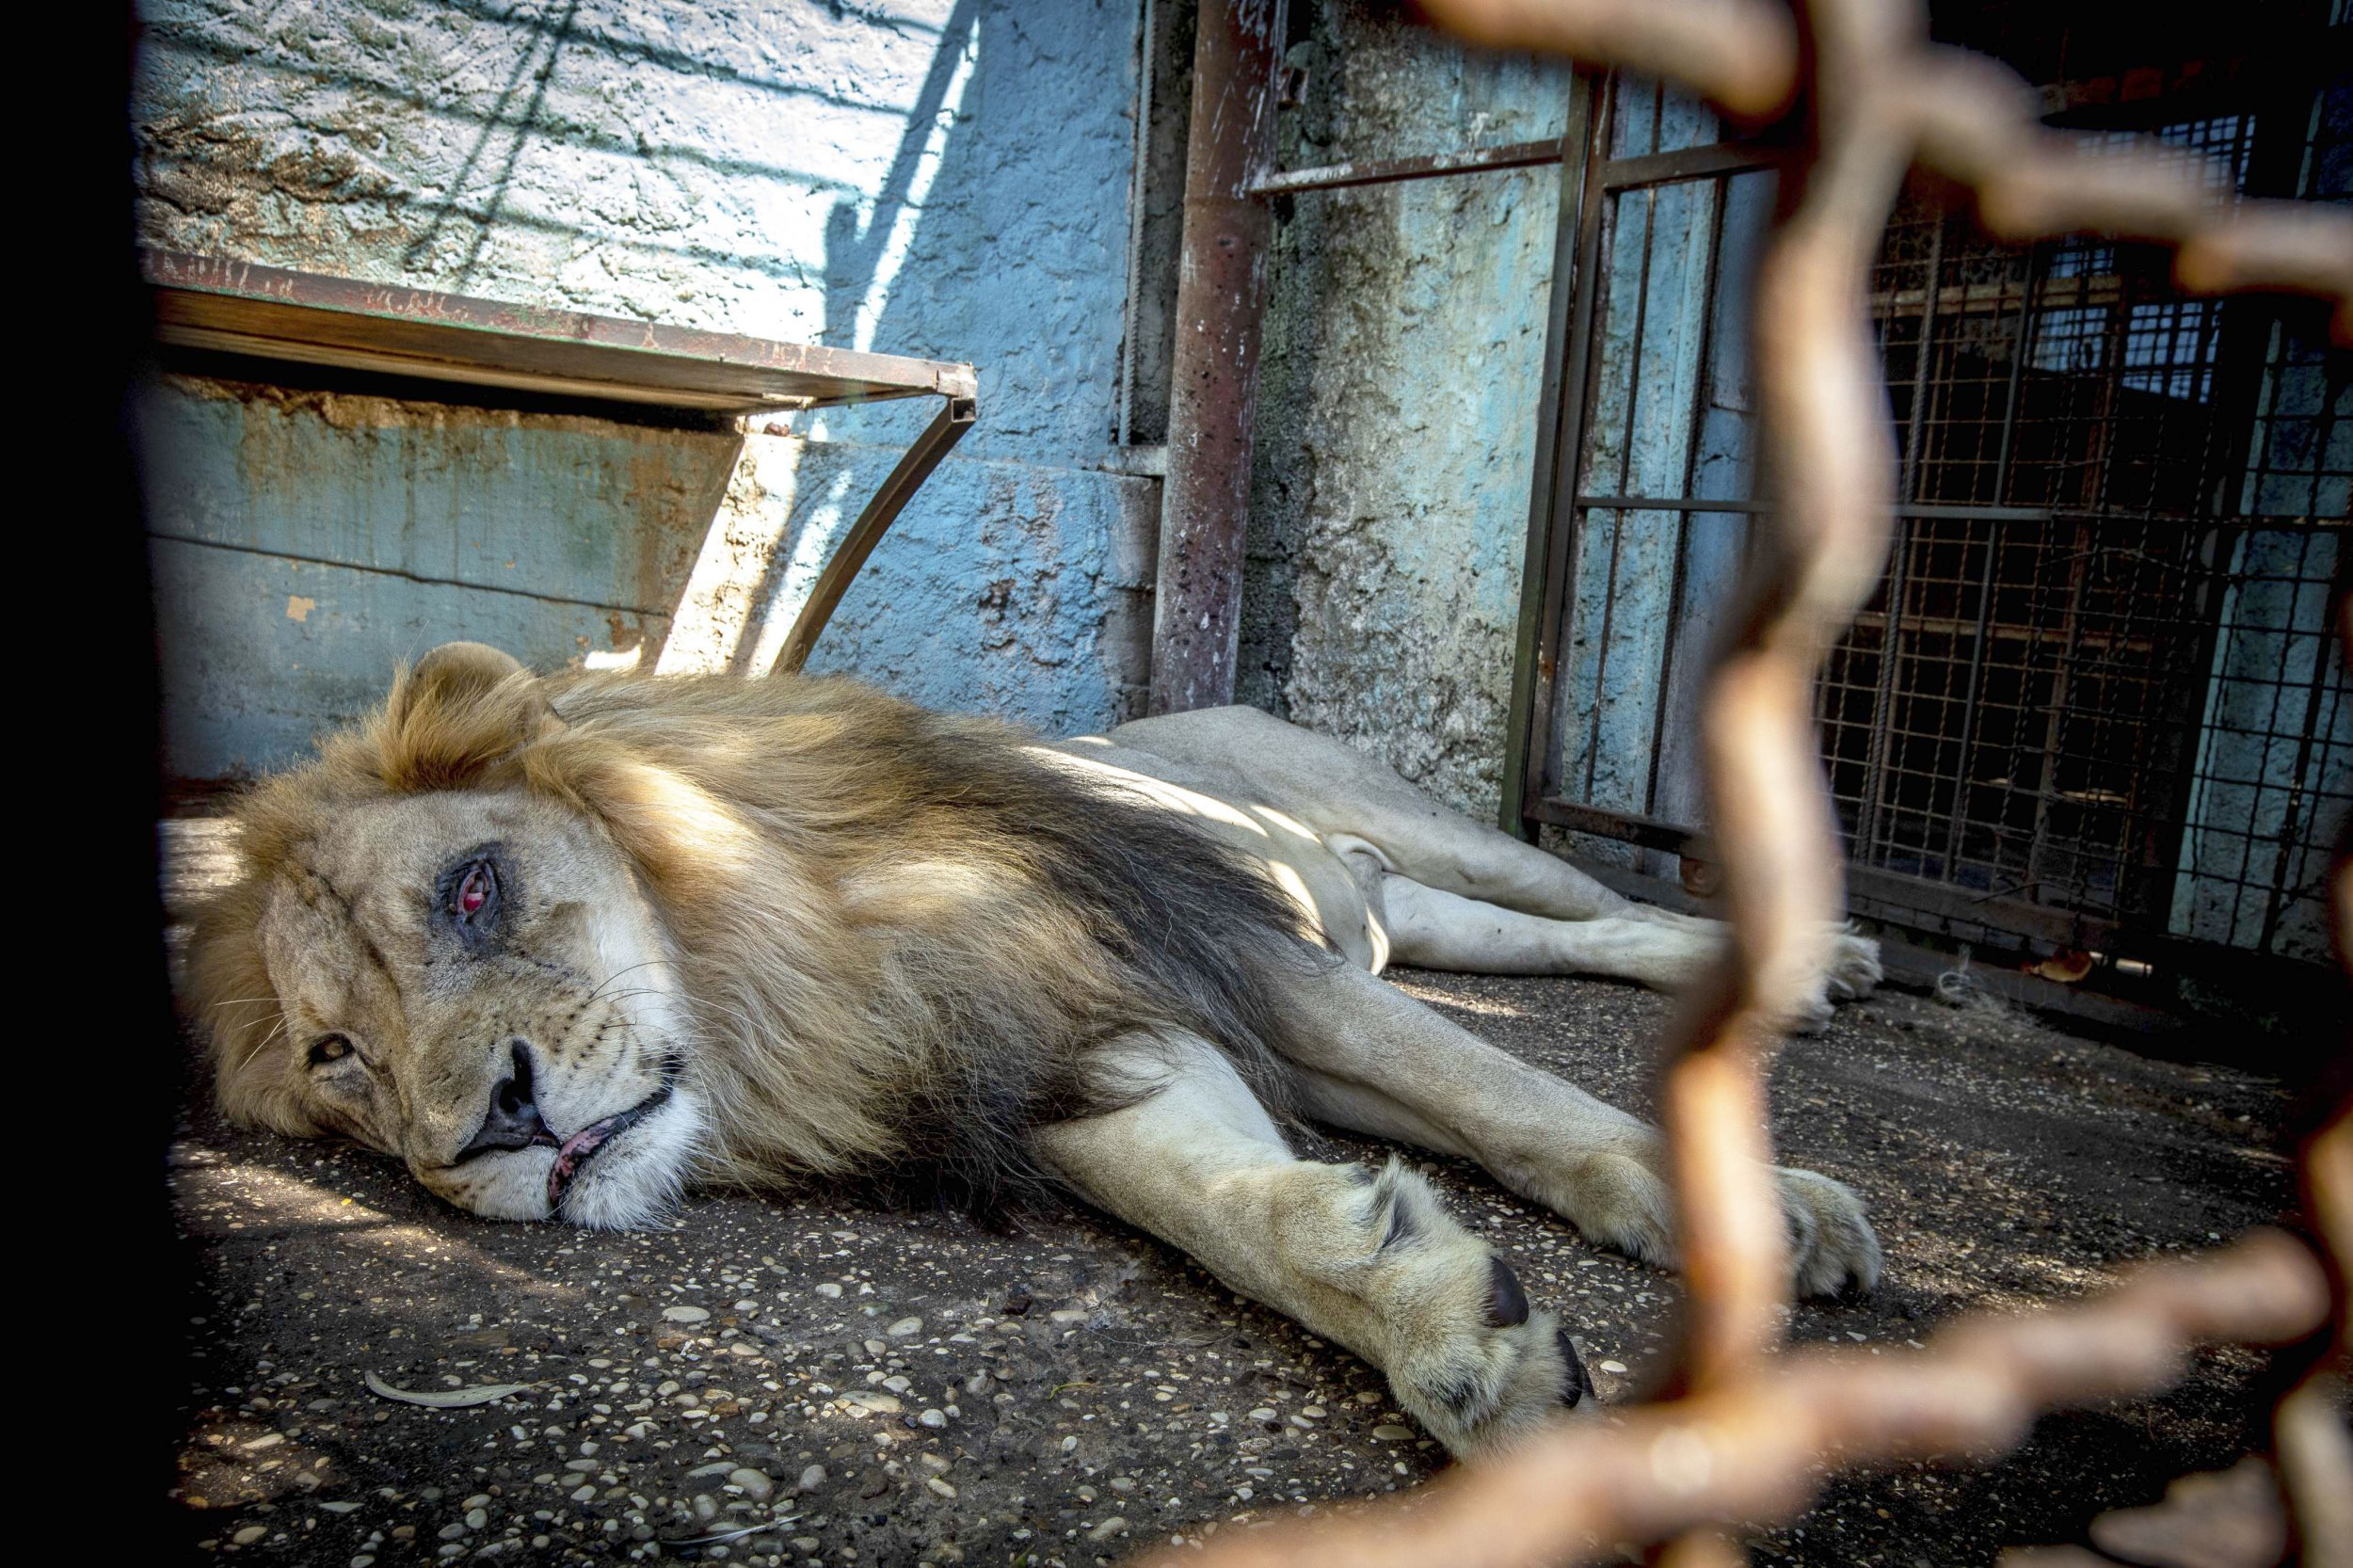 PIC FROM CATERS NEWS - (PICTURED the injured lion ) Albanian authorities are now being urged to act after new photos expose the depressing reality of a zoo labelled the safari park from hell. Pictures taken at an illegal zoo show a lion living in cramped conditions with what appears to be an eye injury as well as looking serverly malnourished. The shocking images have come to light exposing the horrendous animal cruelty at a zoo in the Albanian city of Fier. The photographer said: All the animals are kept in tiny, unhygienic concrete cages with no possibility to retreat from the elements or from the prying eyes of visitors to the zoo. The animals suffer from a range of physical and psychological issues caused by the miserable conditions, improper veterinary care and lack of an appropriate diet. SEE CATERS COPY